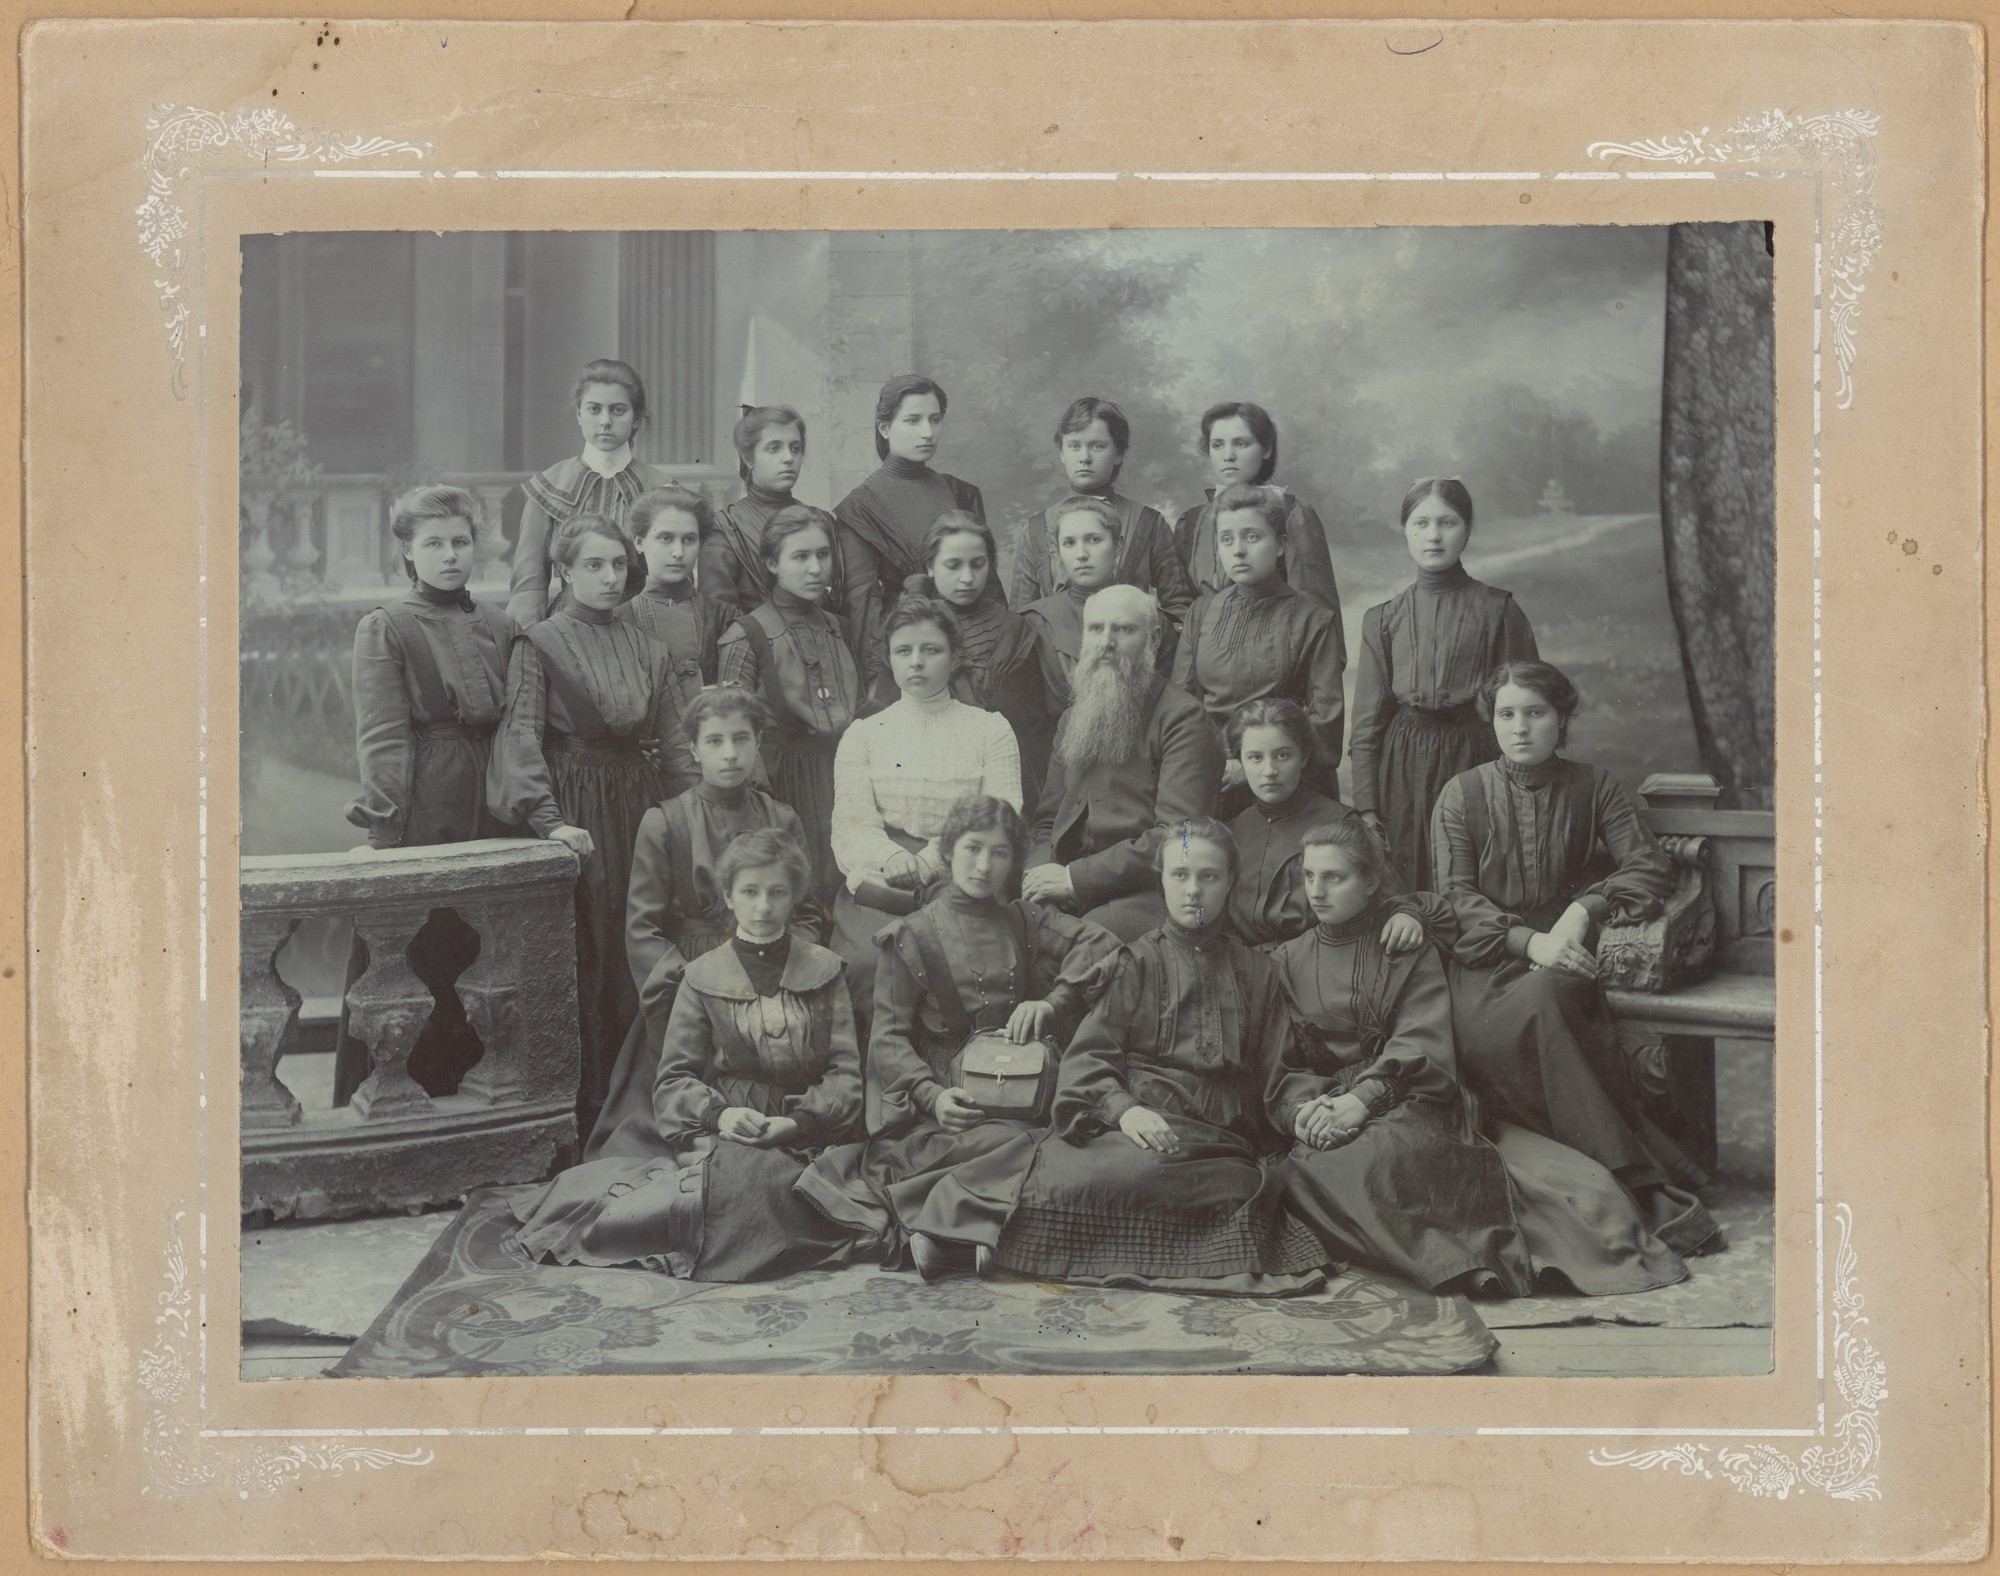 Pupils and teachers of Plovdiv Girls' High School, © State Archives - Plovdiv